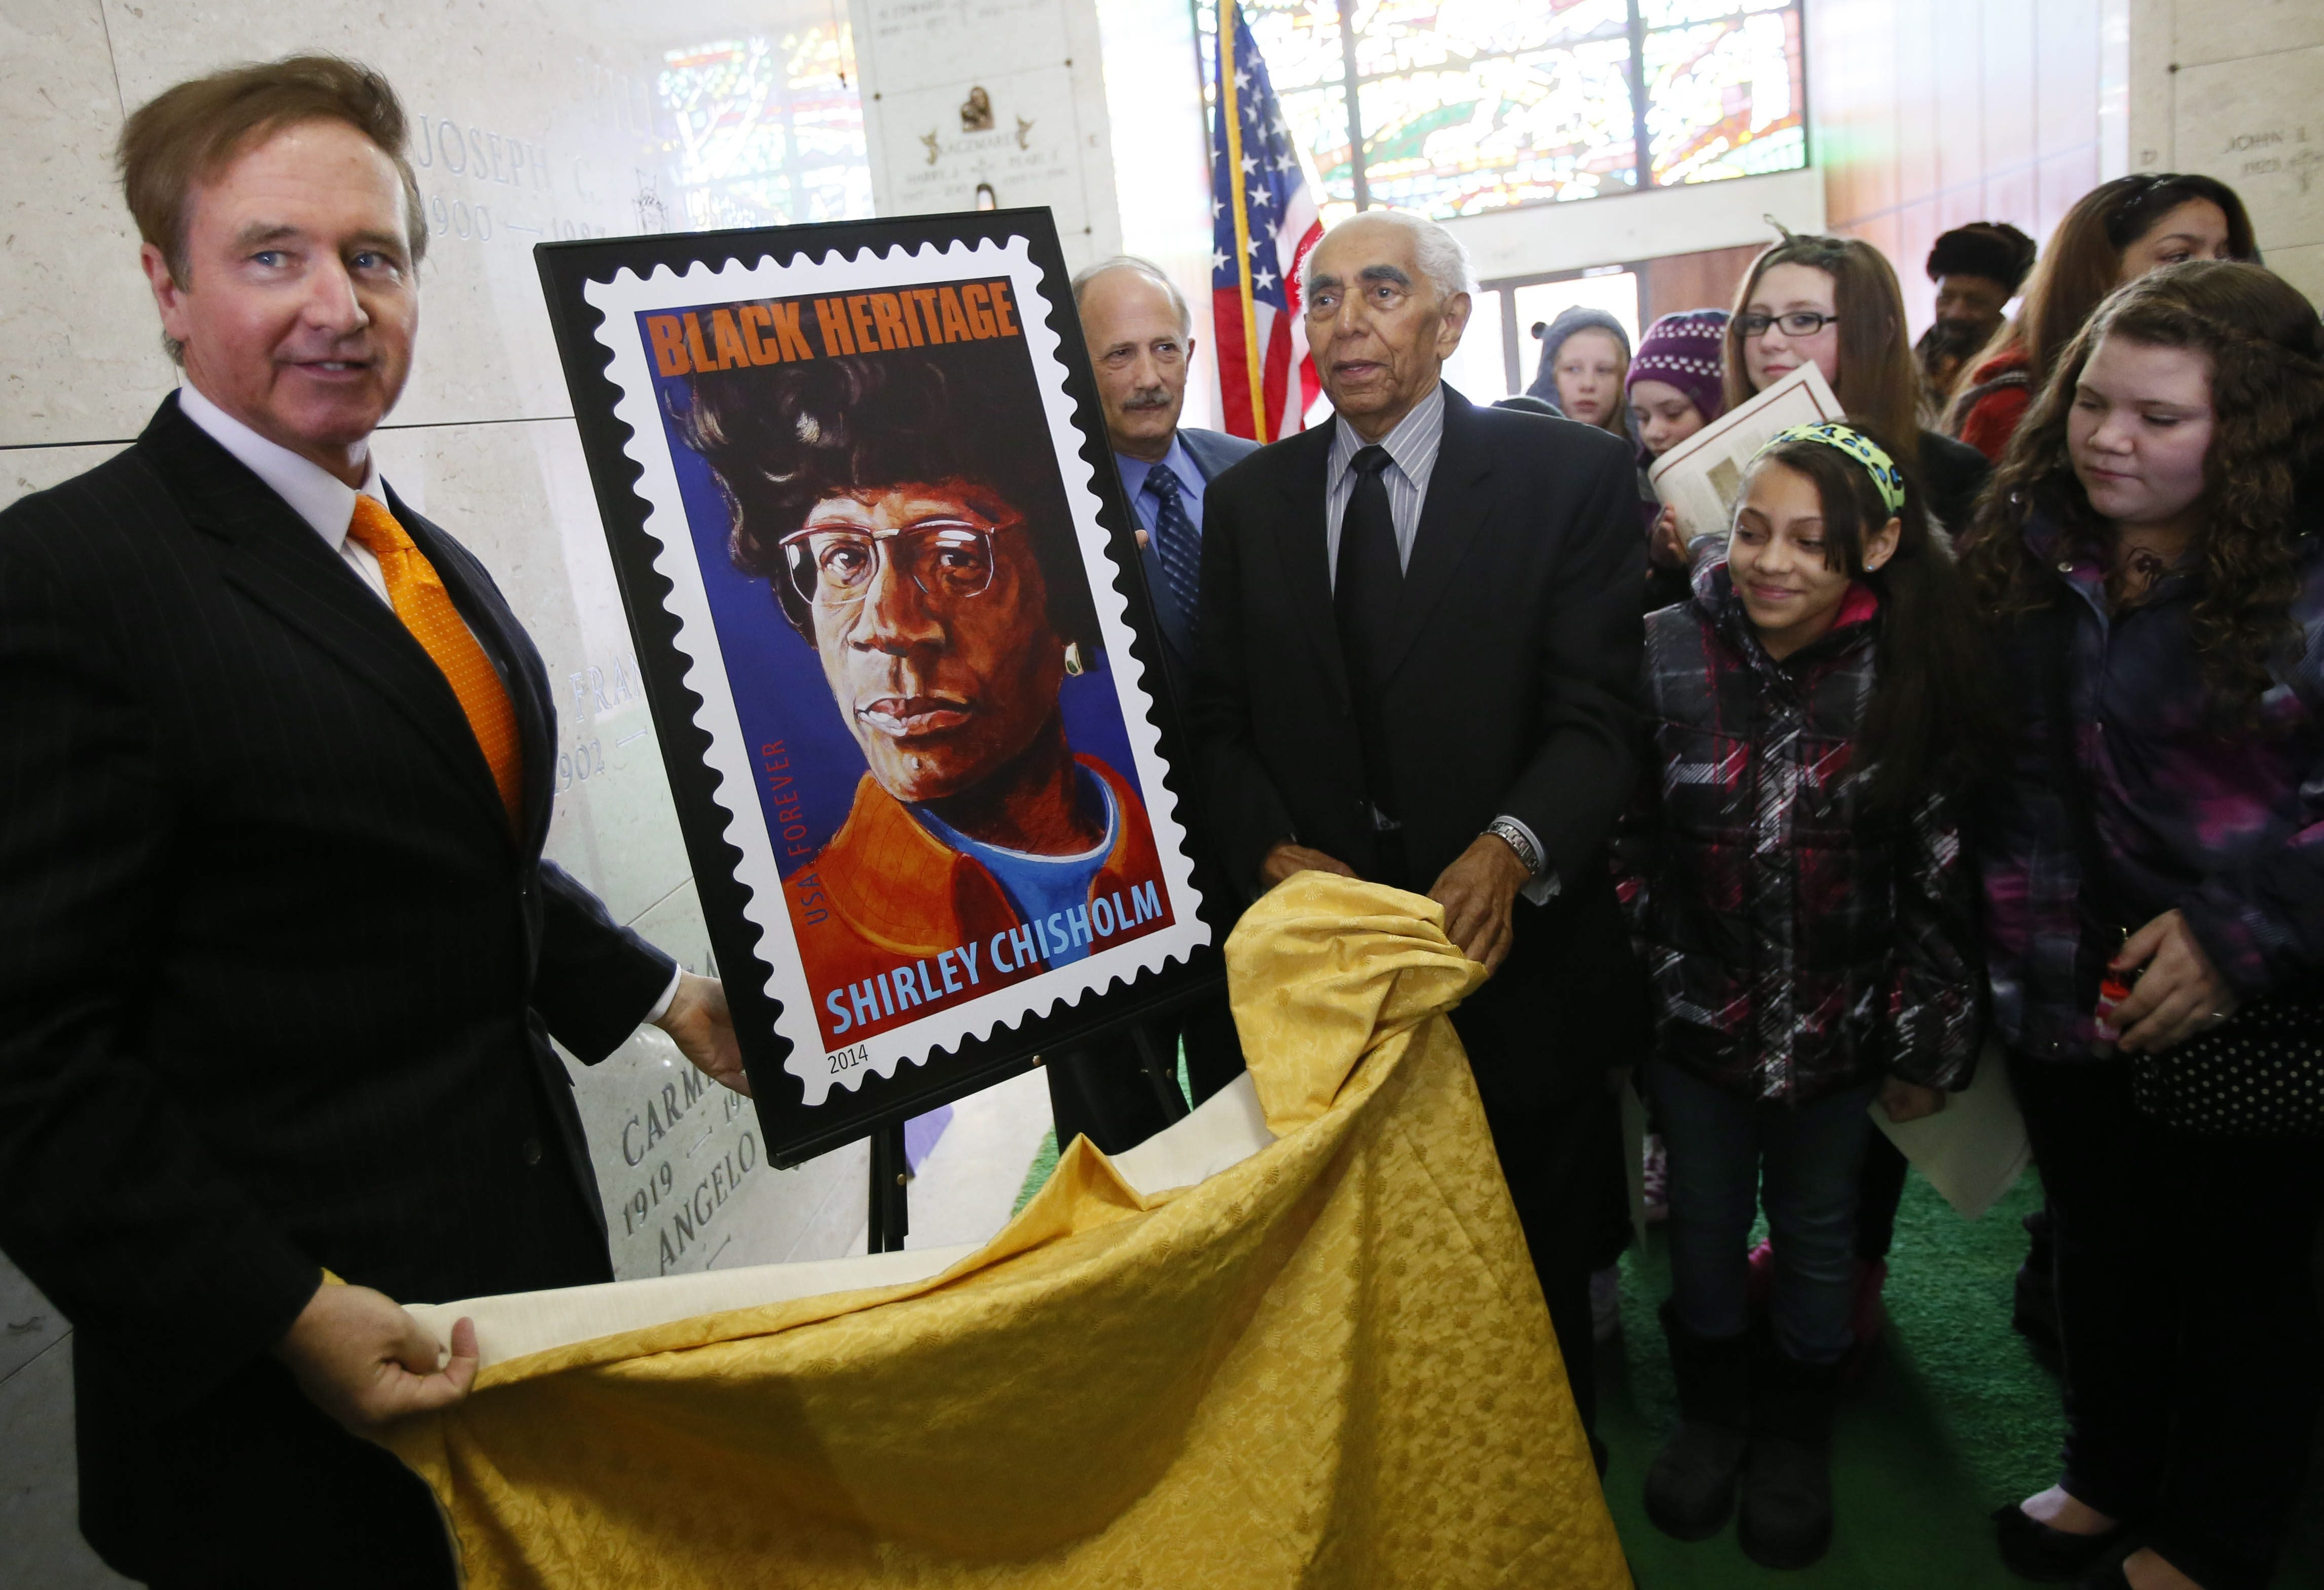 Rep. Brian Higgins, left, and Frank Mesiah, head of the Buffalo branch of the NAACP, unveil a U.S. Postal Service stamp honoring Shirley Chisholm on Tuesday in Forest Lawn, where Chisholm is entombed.